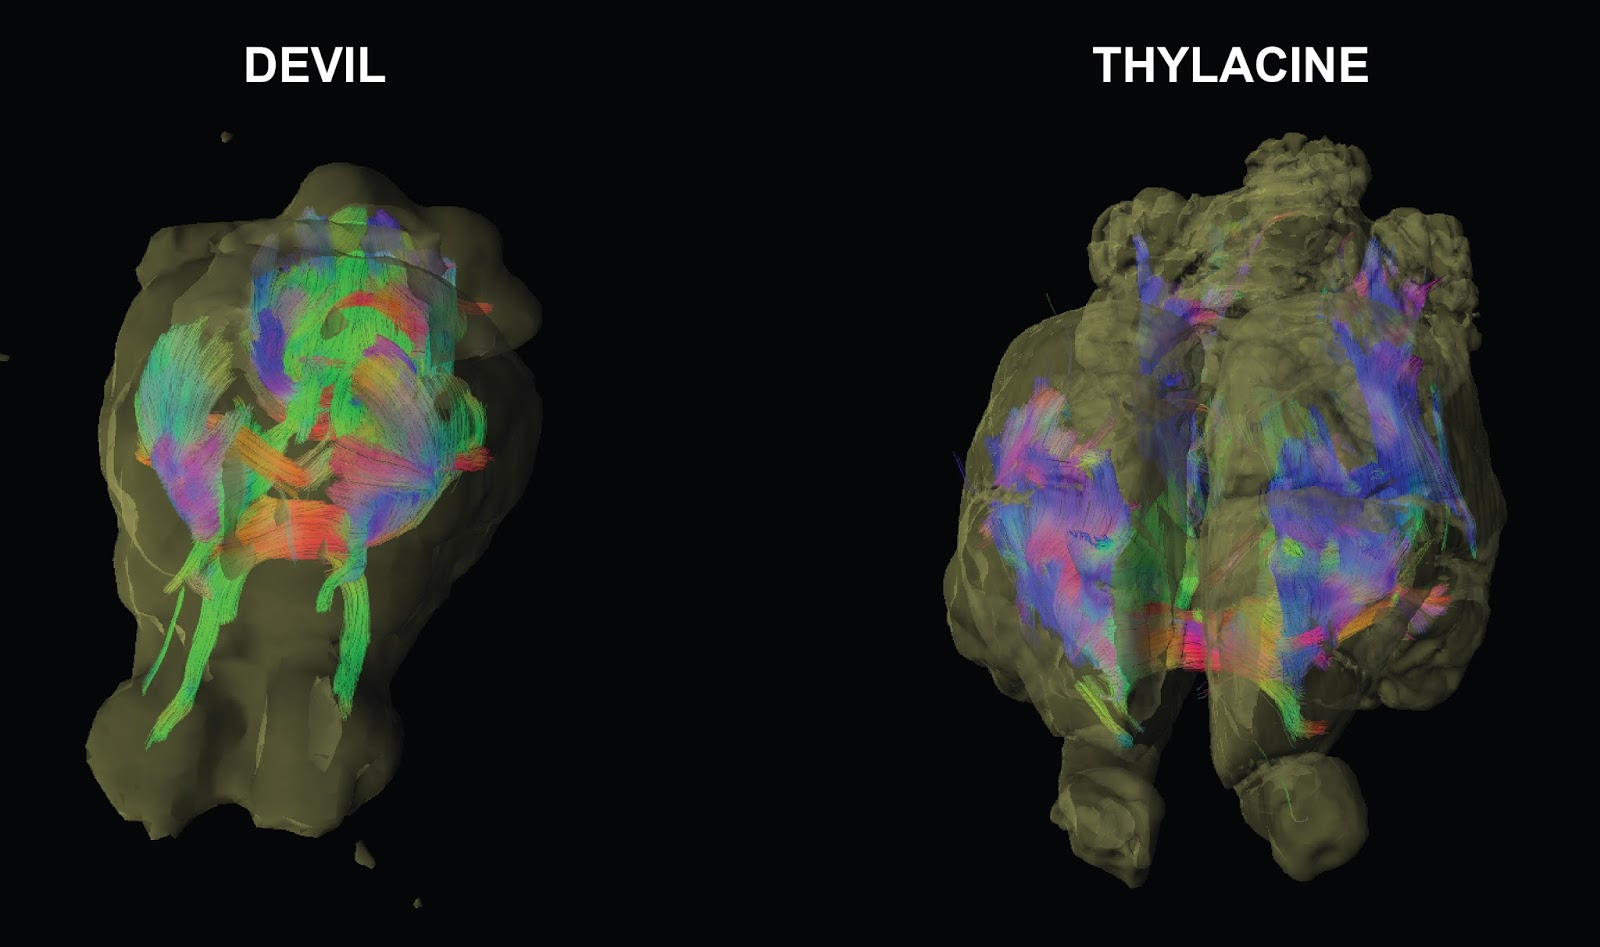 reconstruction of the neural pathways of the Tasmanian devil (left) and the Tasmanian tiger